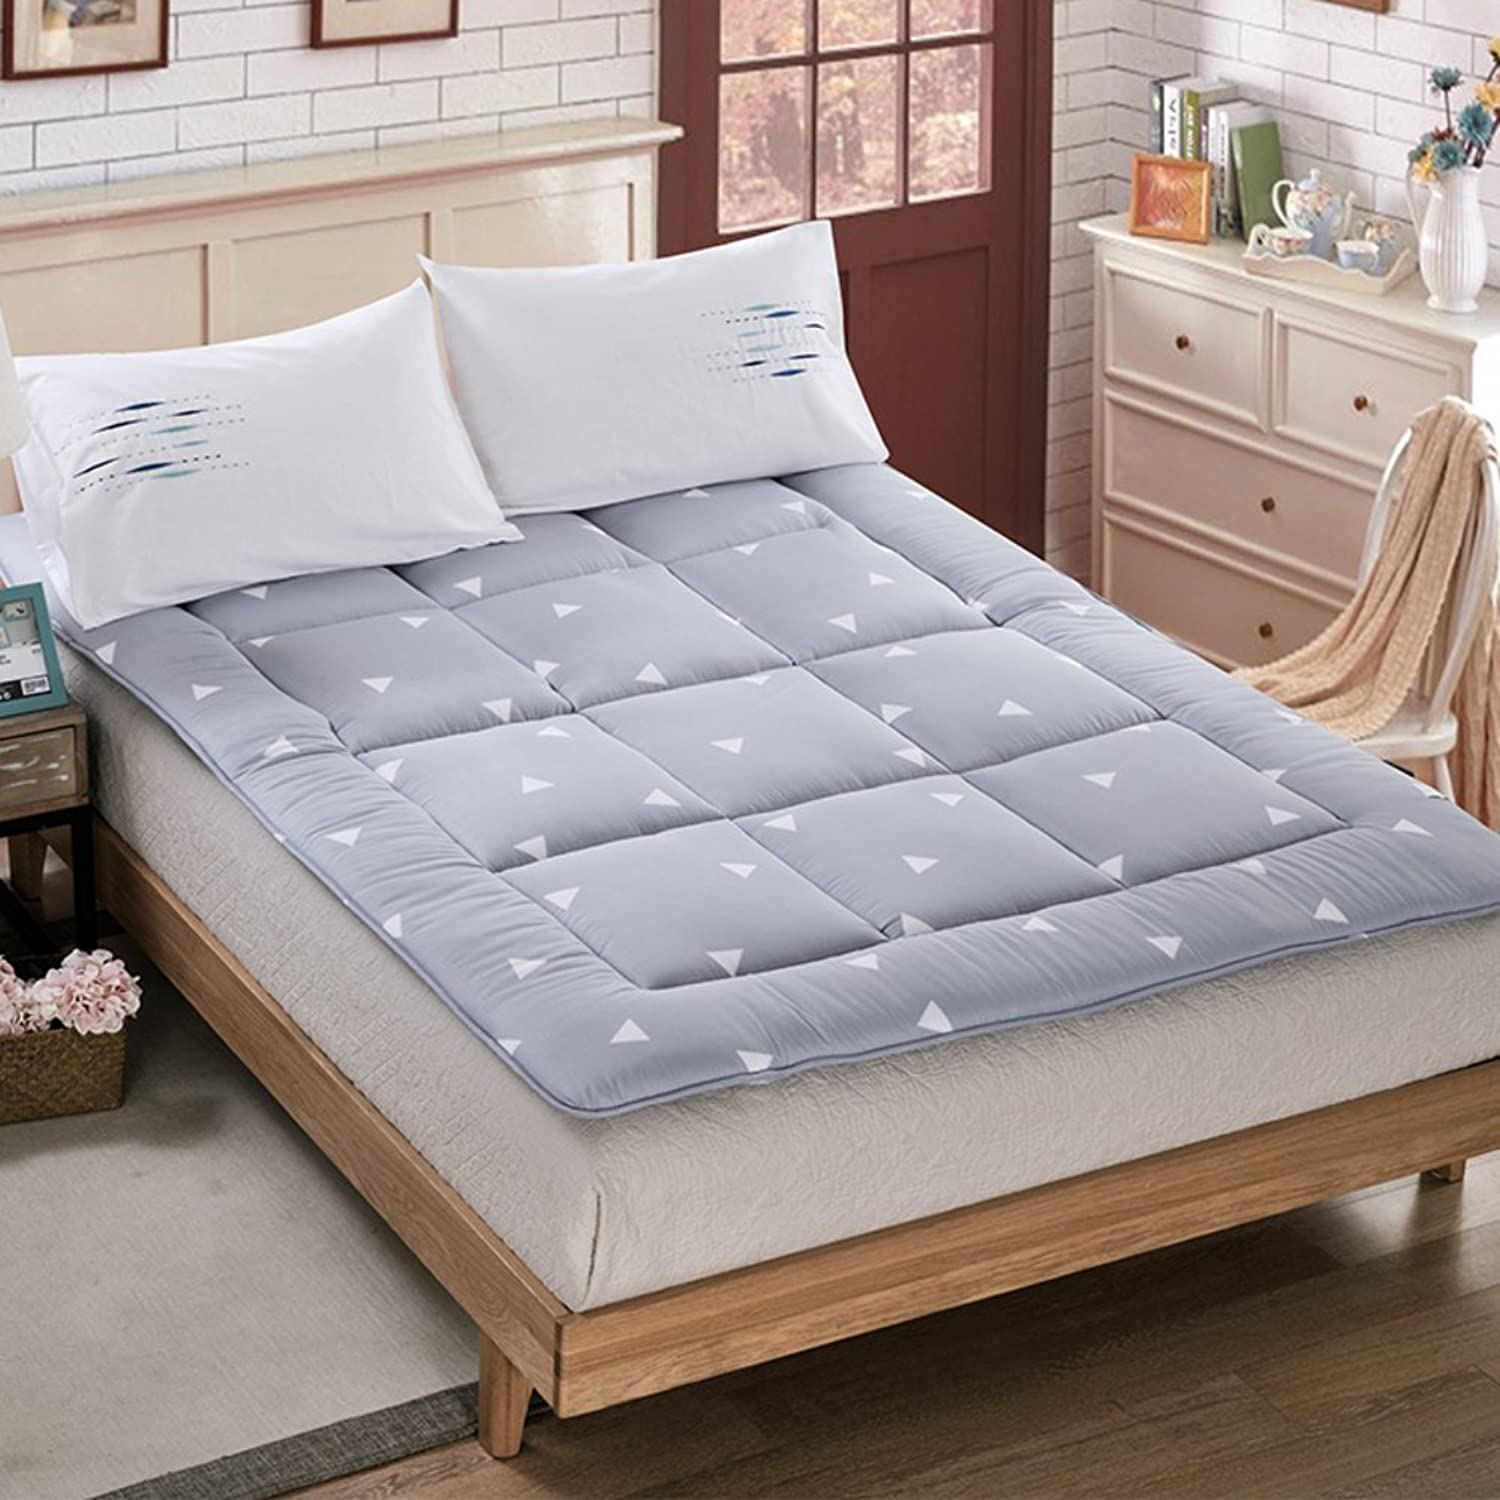 Thickening Non-Slip Floor Mattress,Foldable Tatami Mattress Comfort Portable Overfilled Mattress pad Cover Nap mat Dormitory Mattress Bed pad Anti-Skid-B 180x200cm(71x79inch)